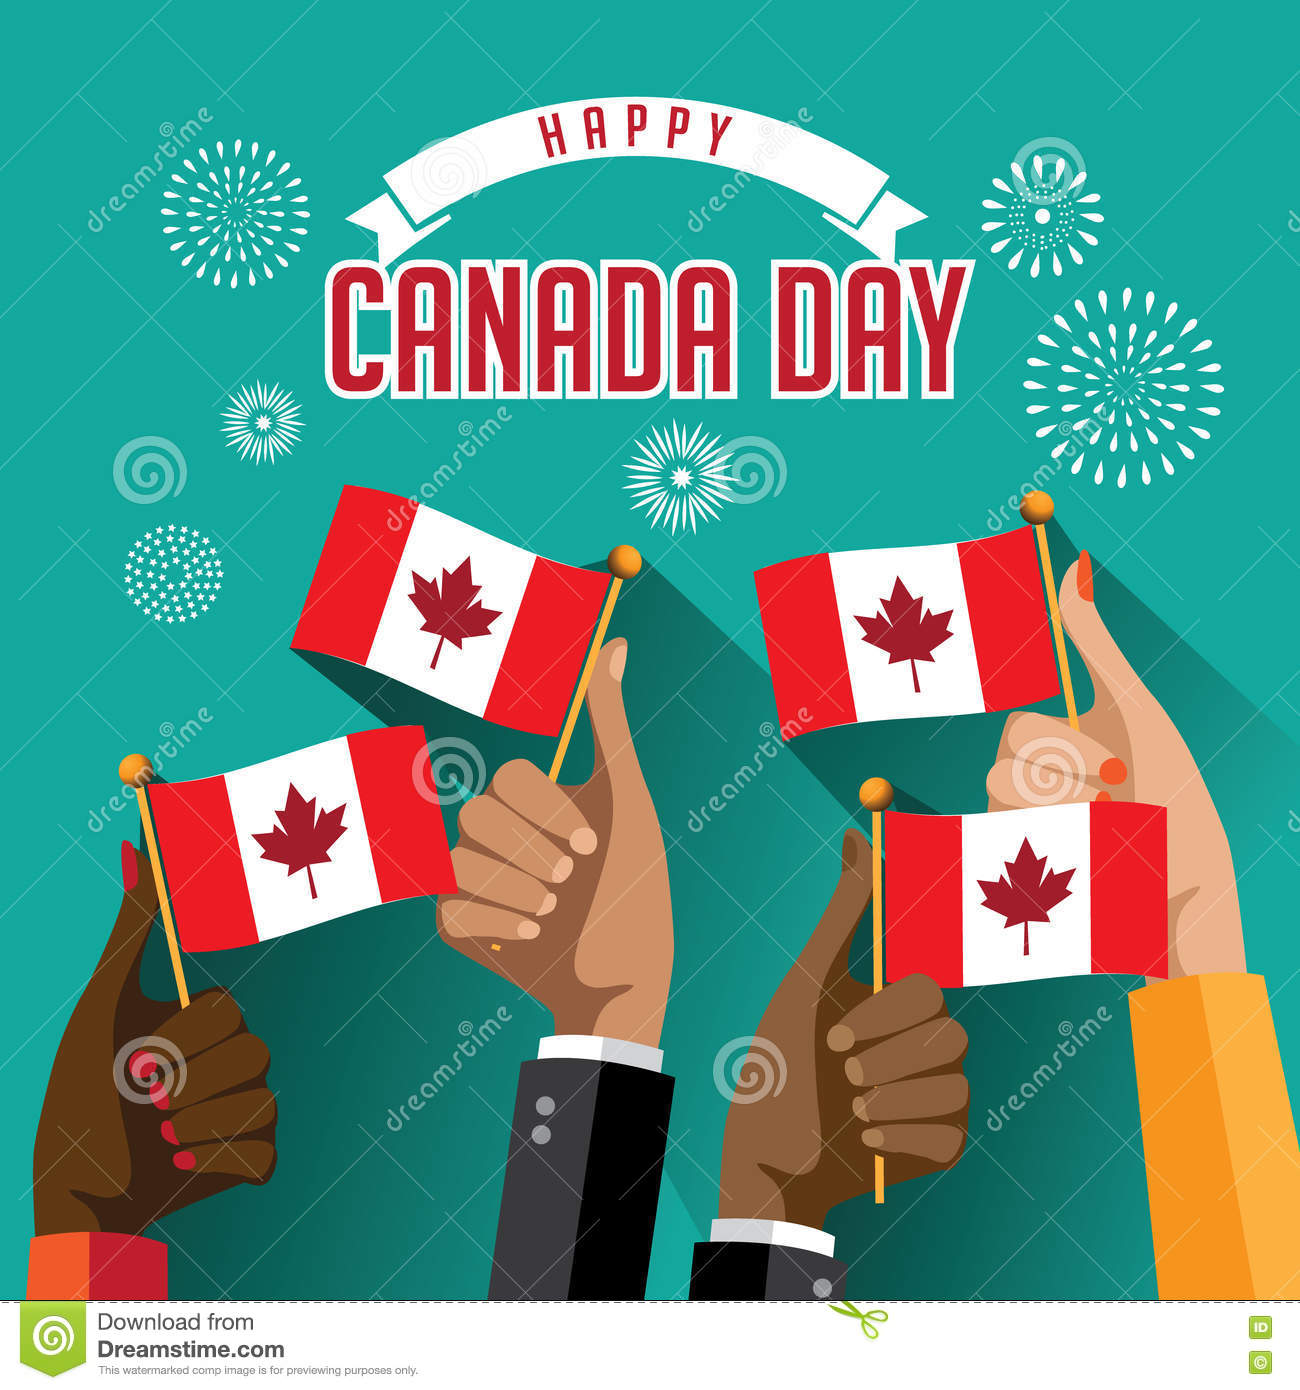 Flat design Canada Day hands holding flags with fireworks design.